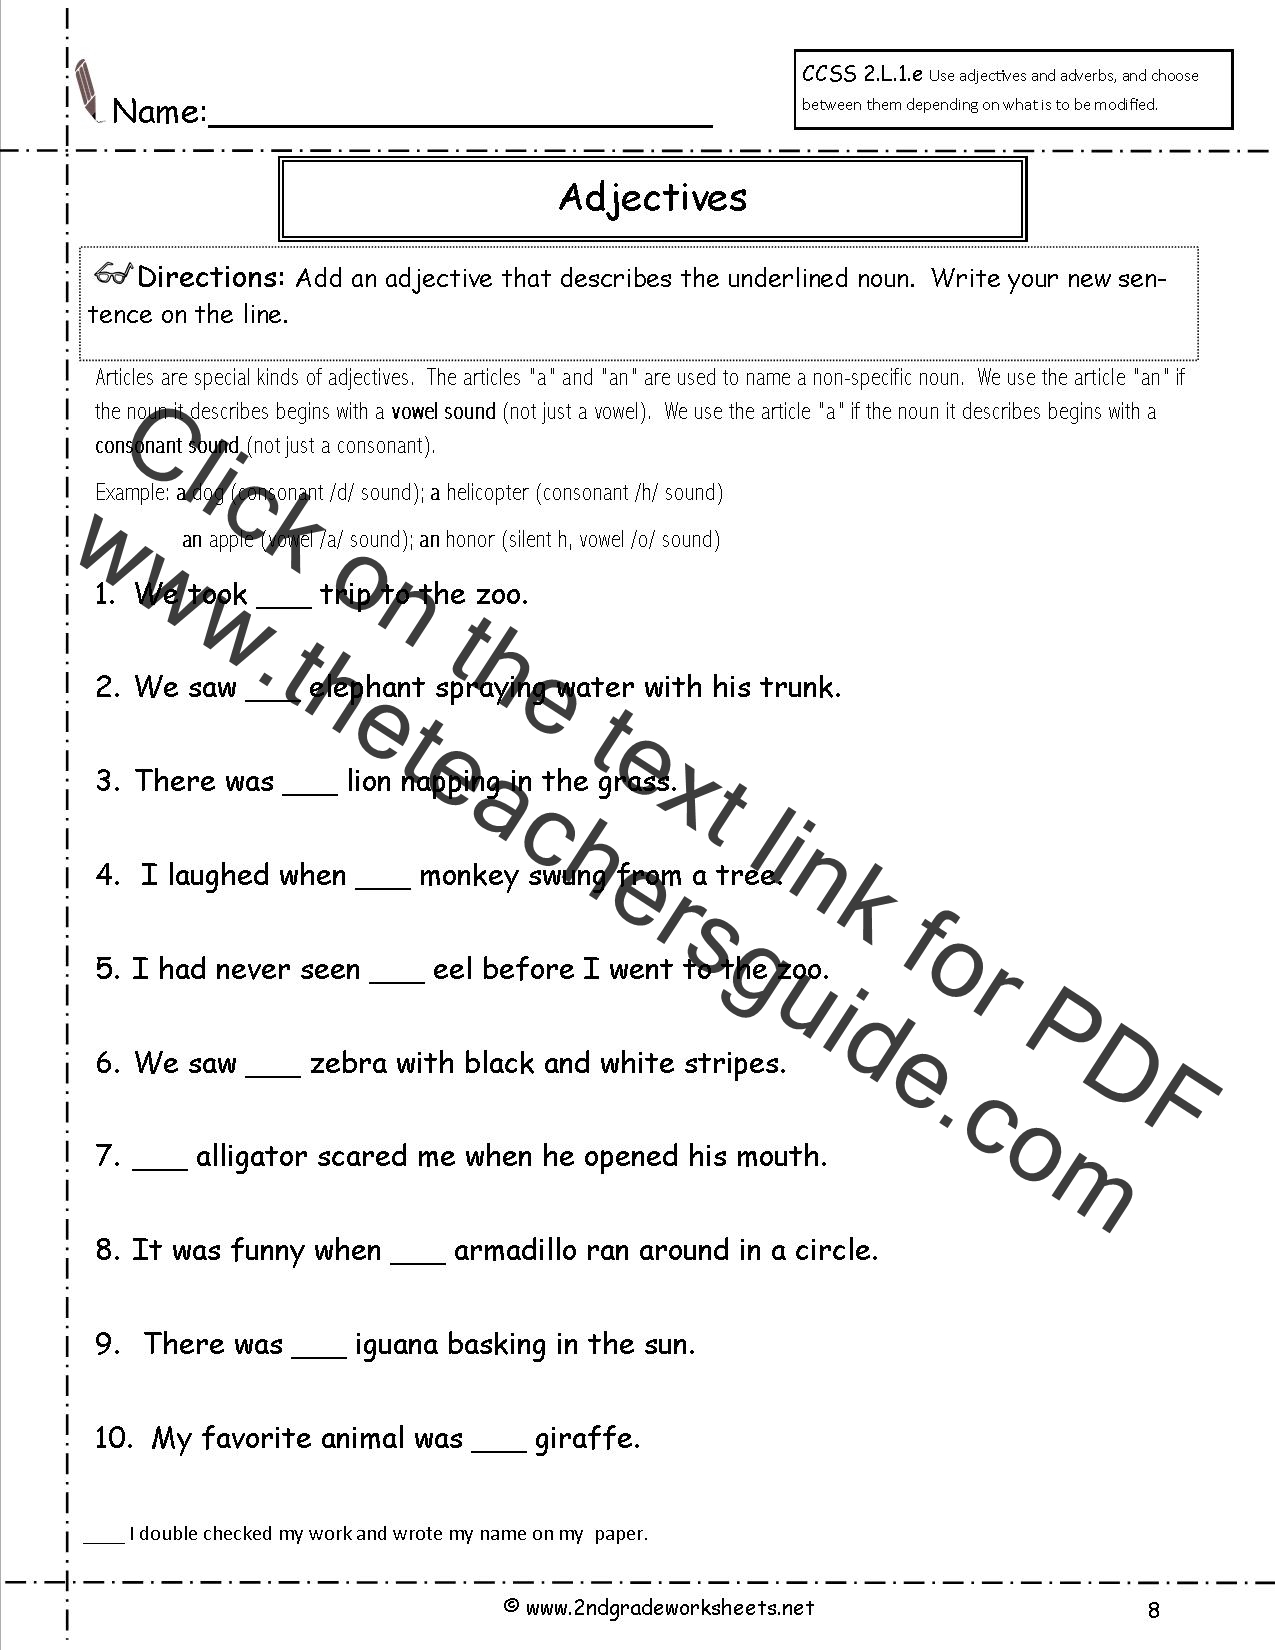 hight resolution of Free Using Adjectives and Adverbs Worksheets